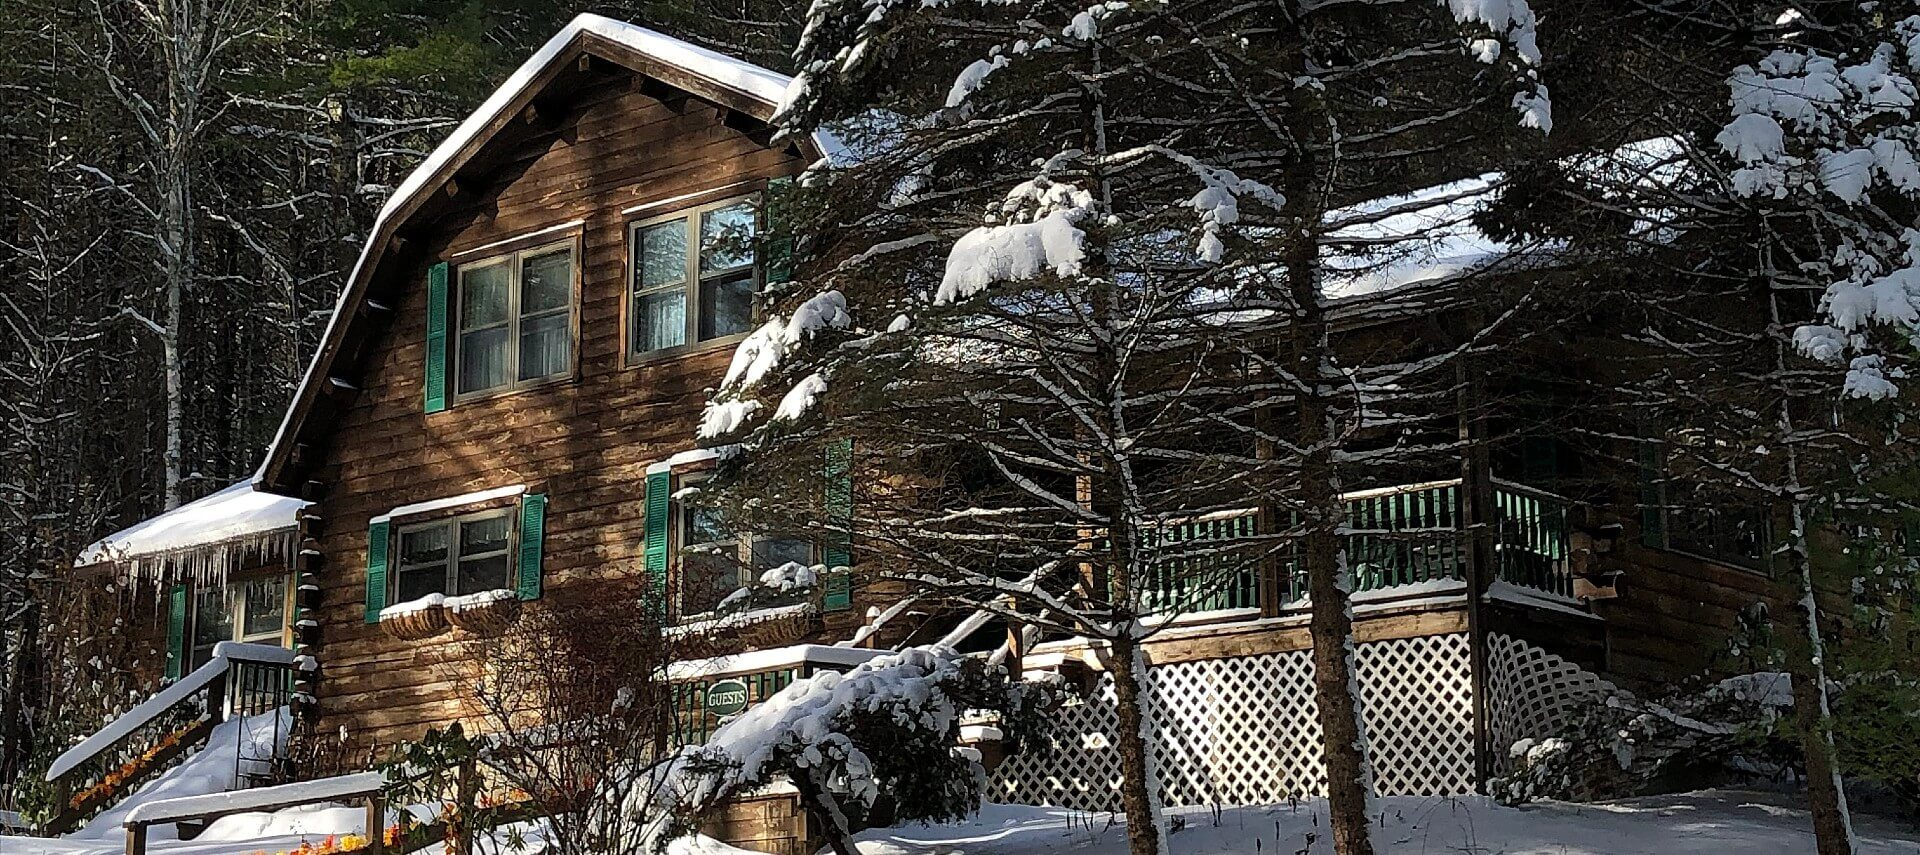 Large wood cabin home with green shutters and front porch nestled in woods covered with snow